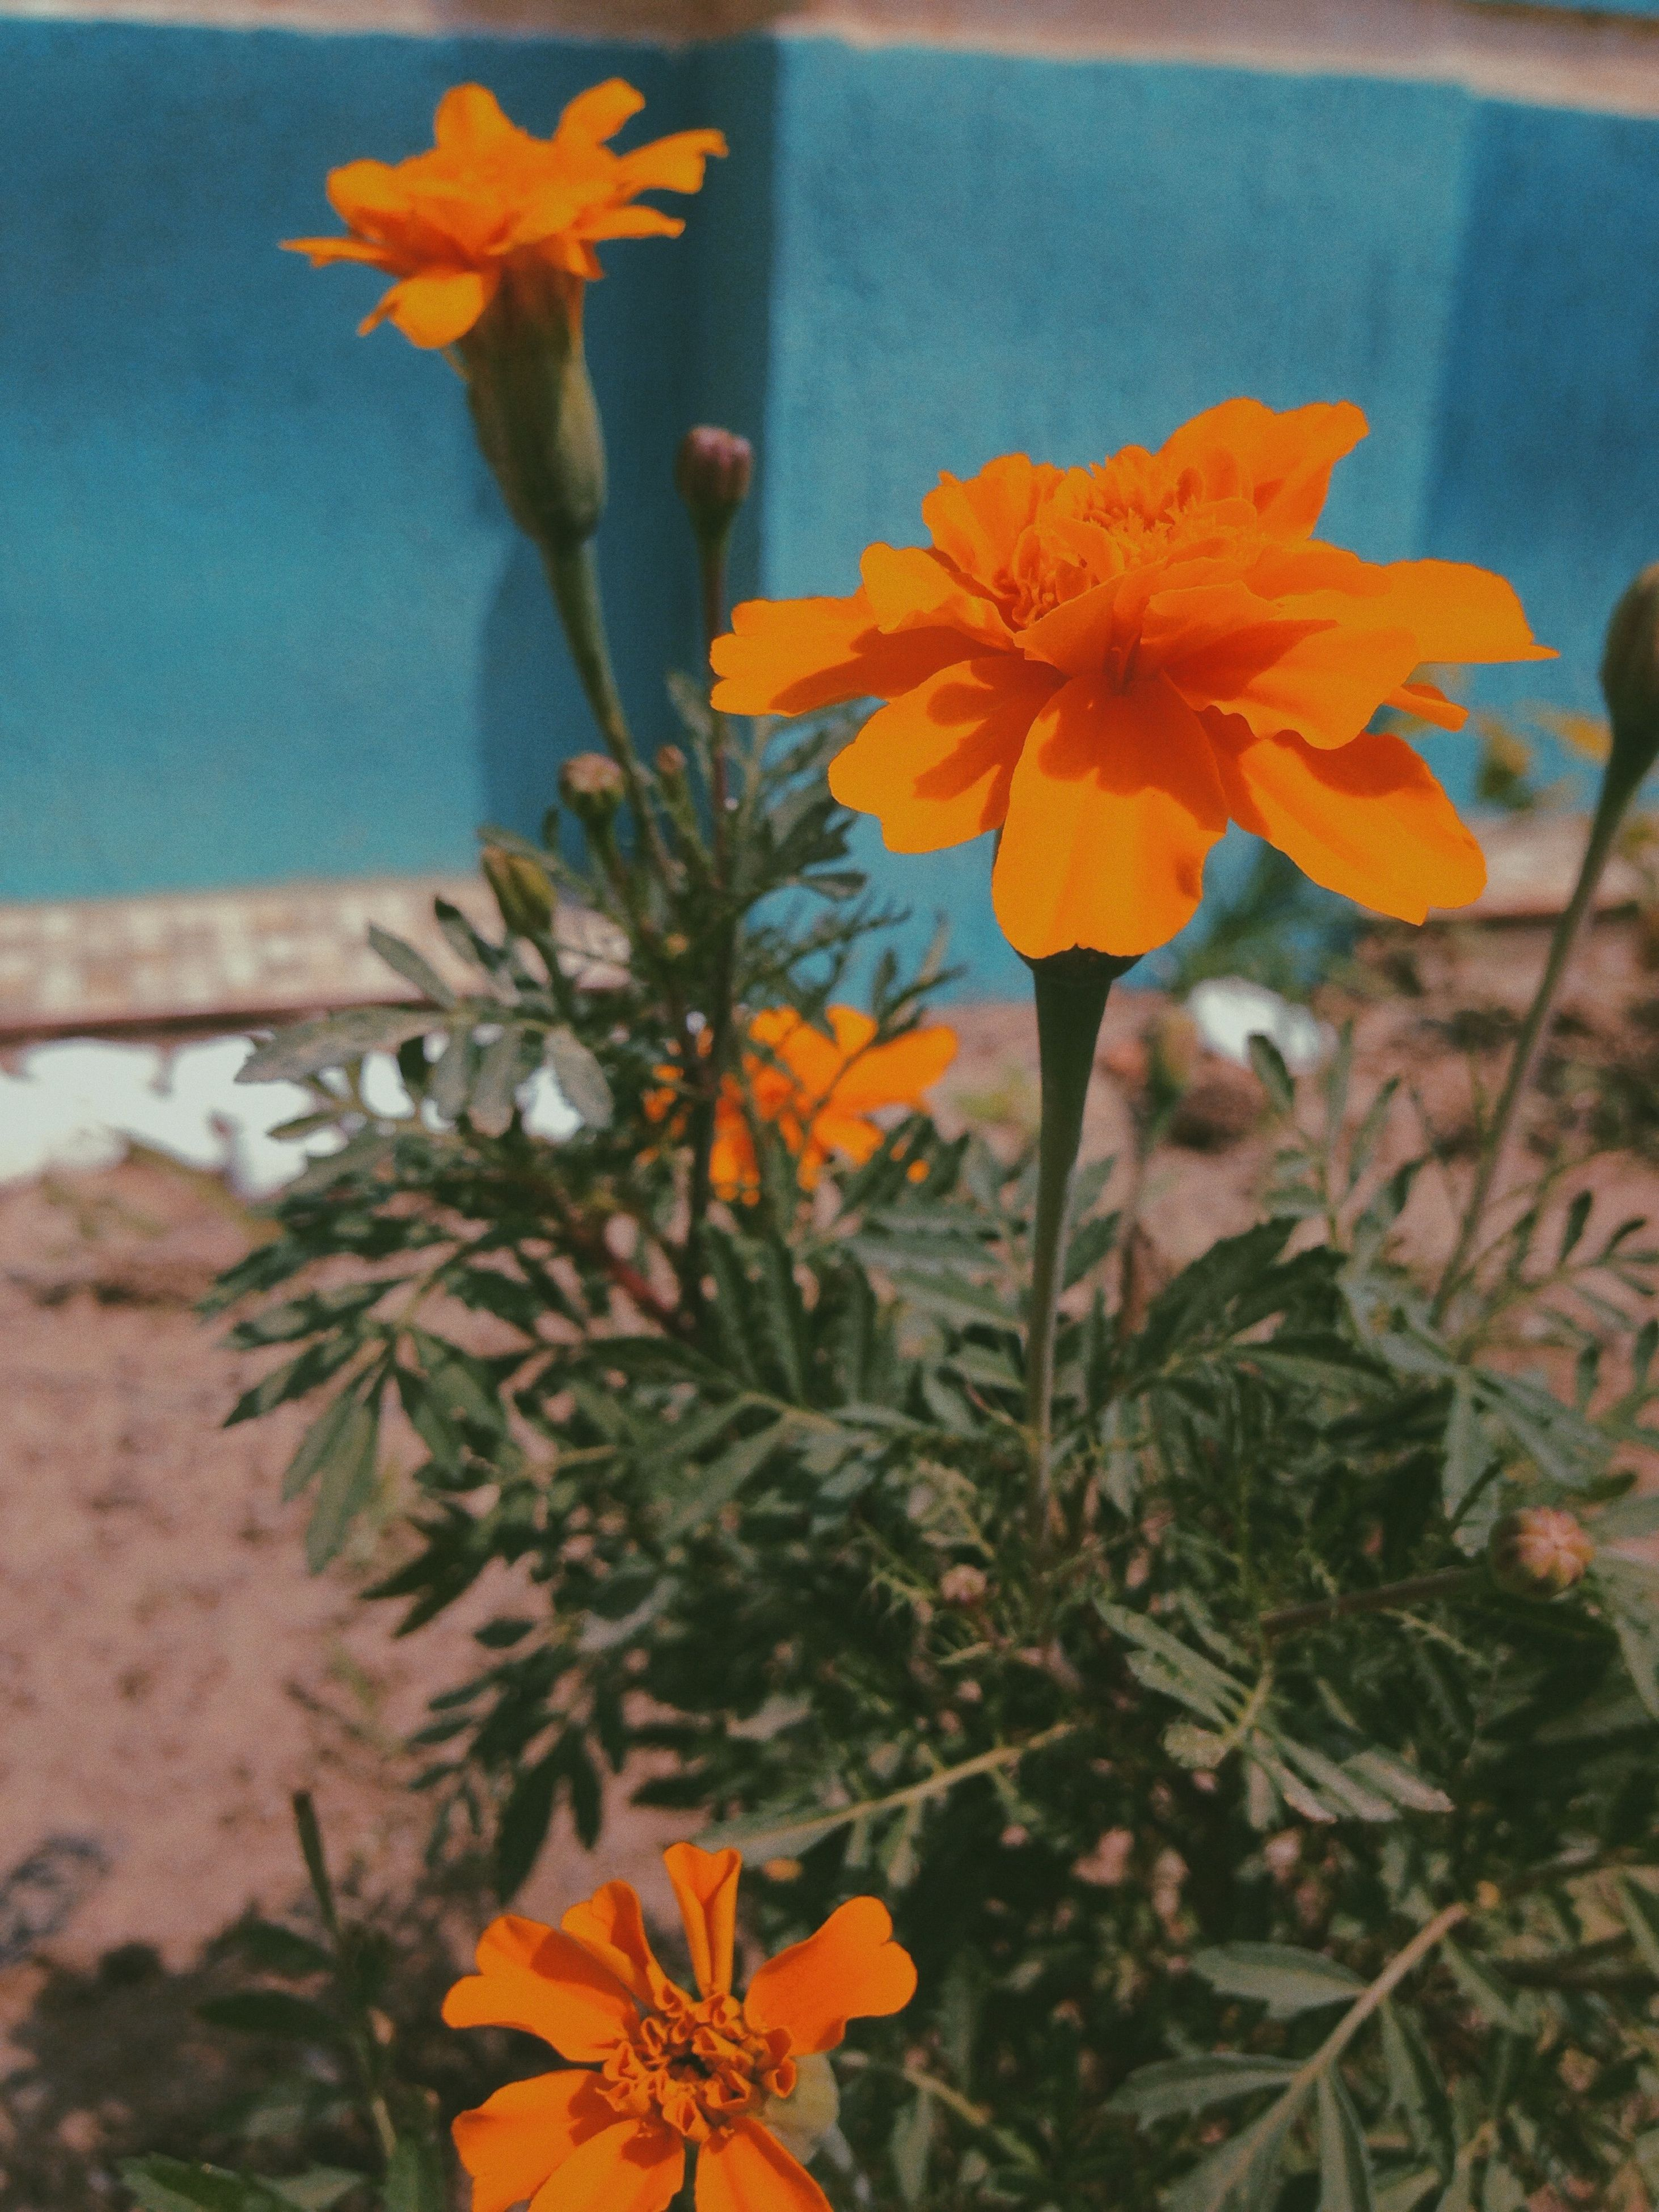 flower, fragility, petal, freshness, growth, flower head, plant, blooming, beauty in nature, close-up, nature, orange color, yellow, leaf, stem, focus on foreground, in bloom, day, outdoors, blossom